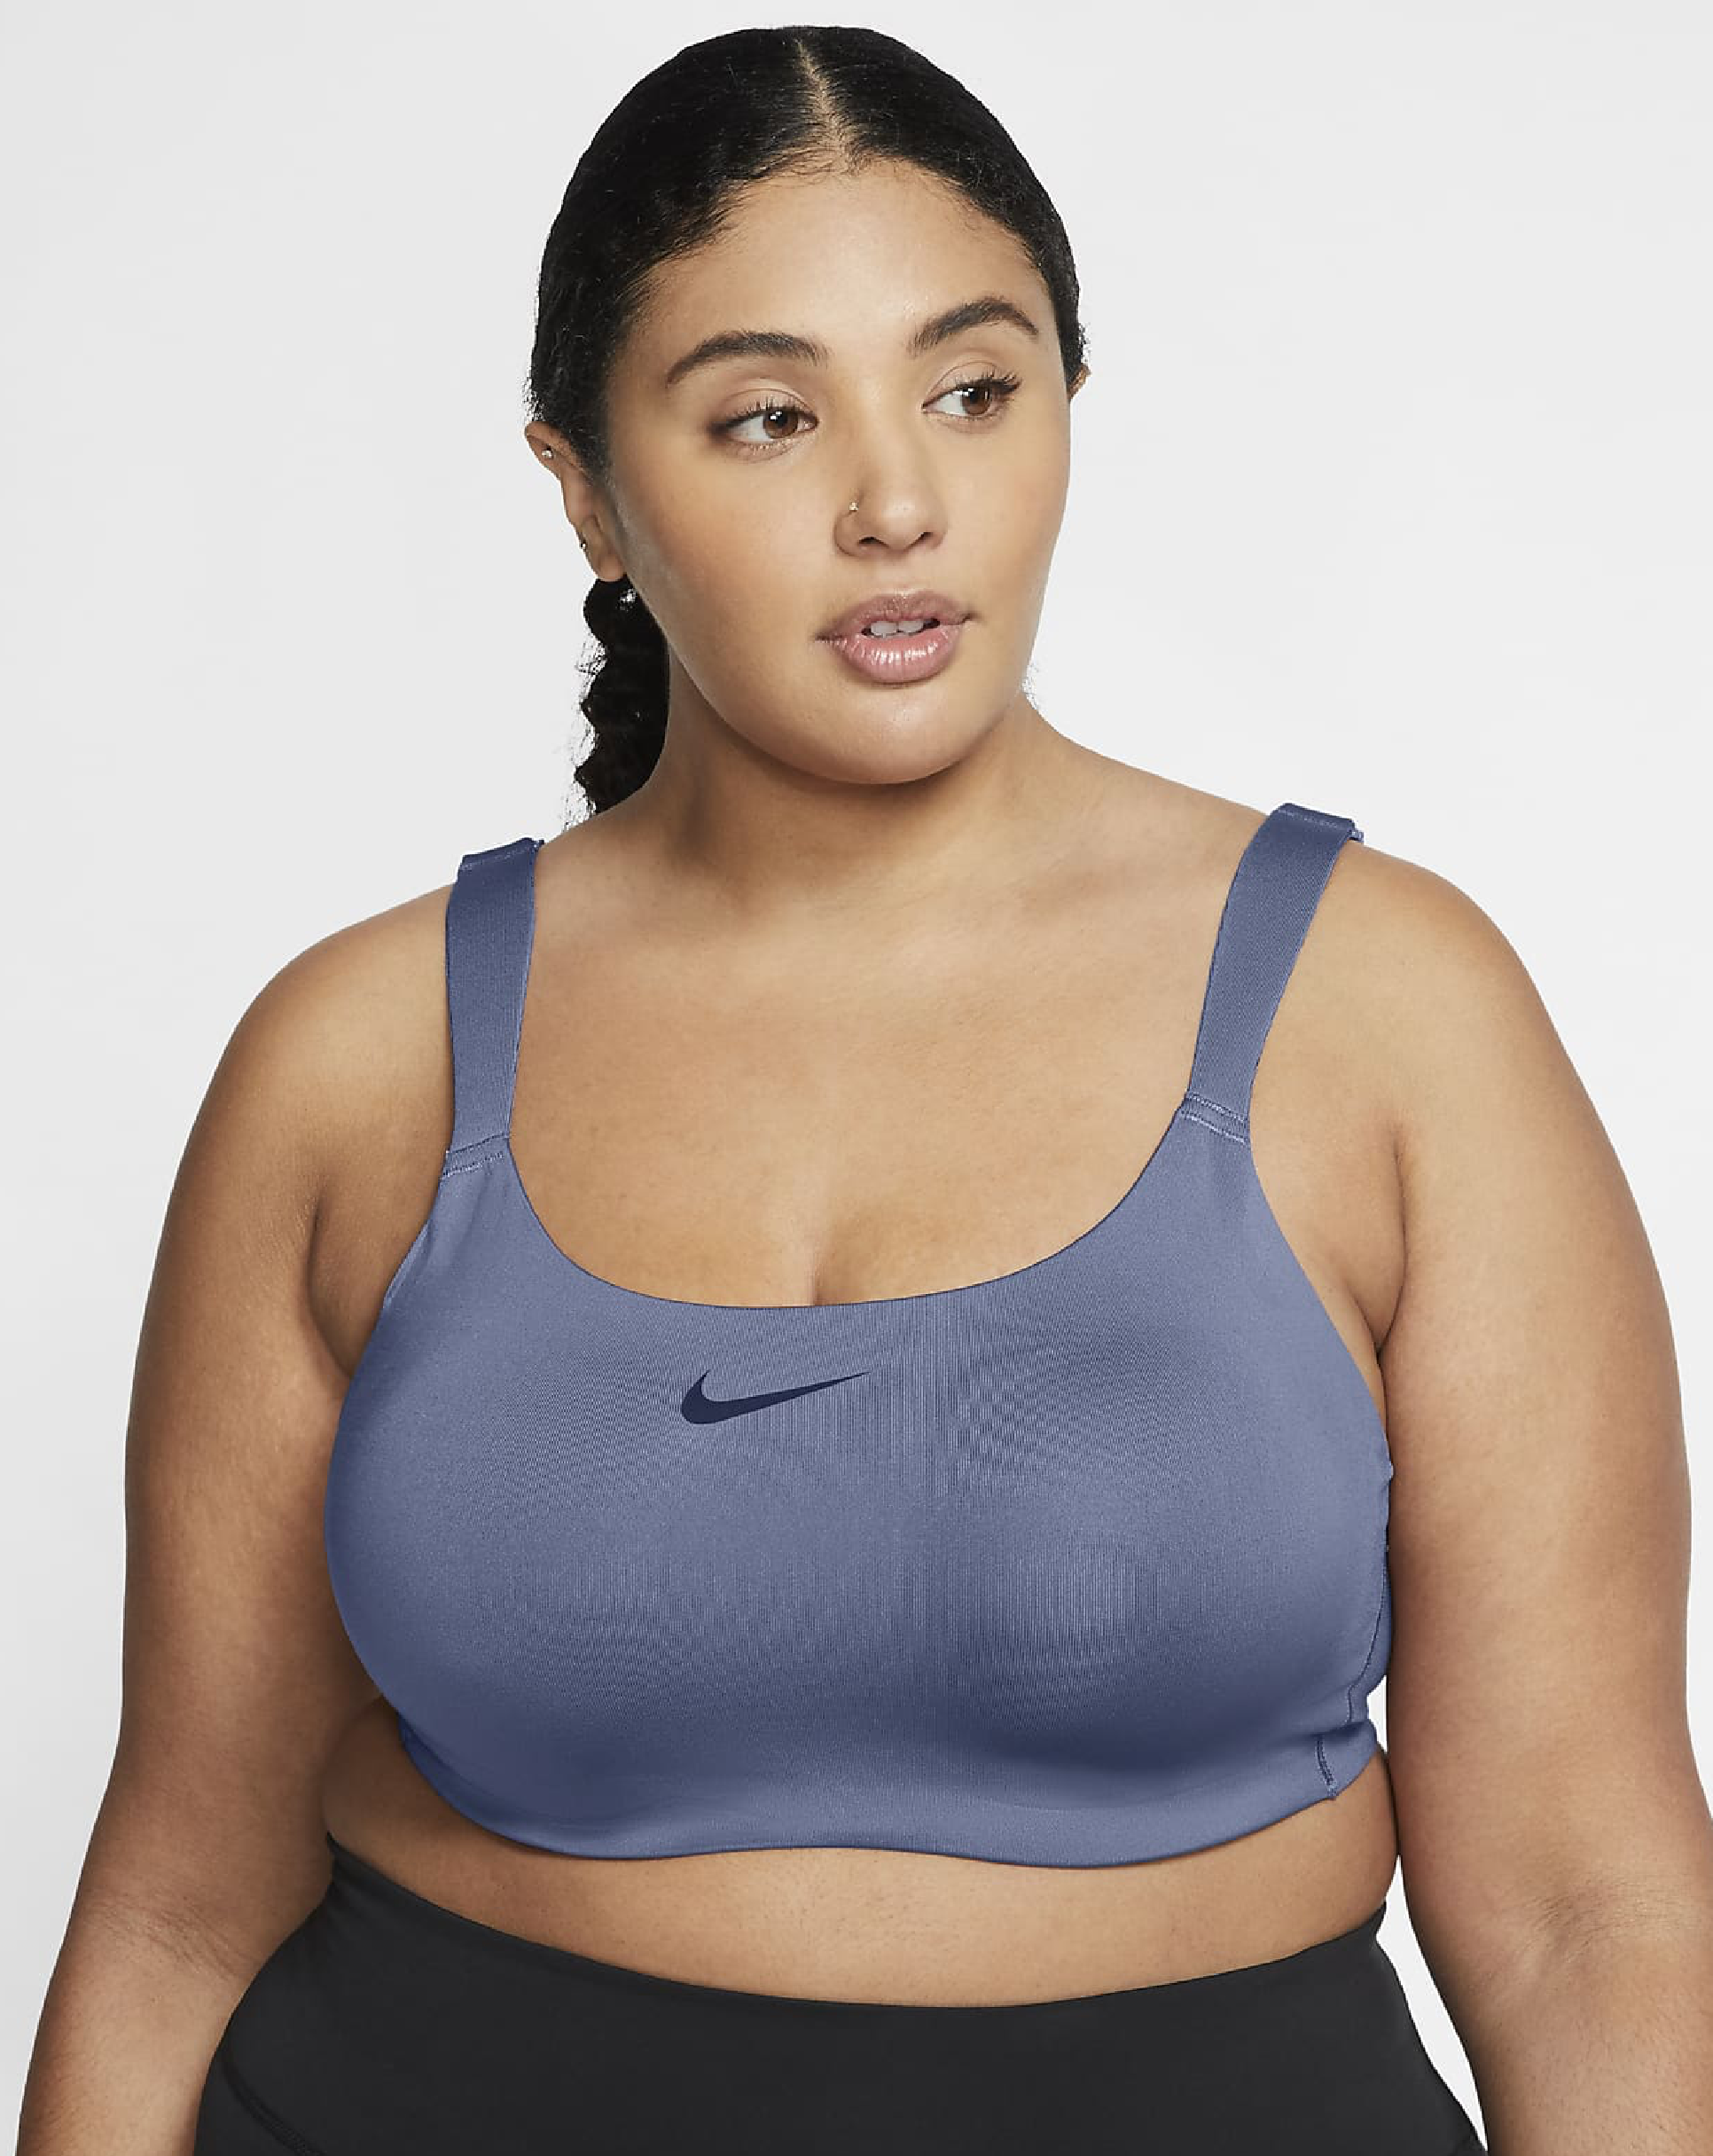 A plus sized model wearing the grey bra with a black Nike swoosh in the center